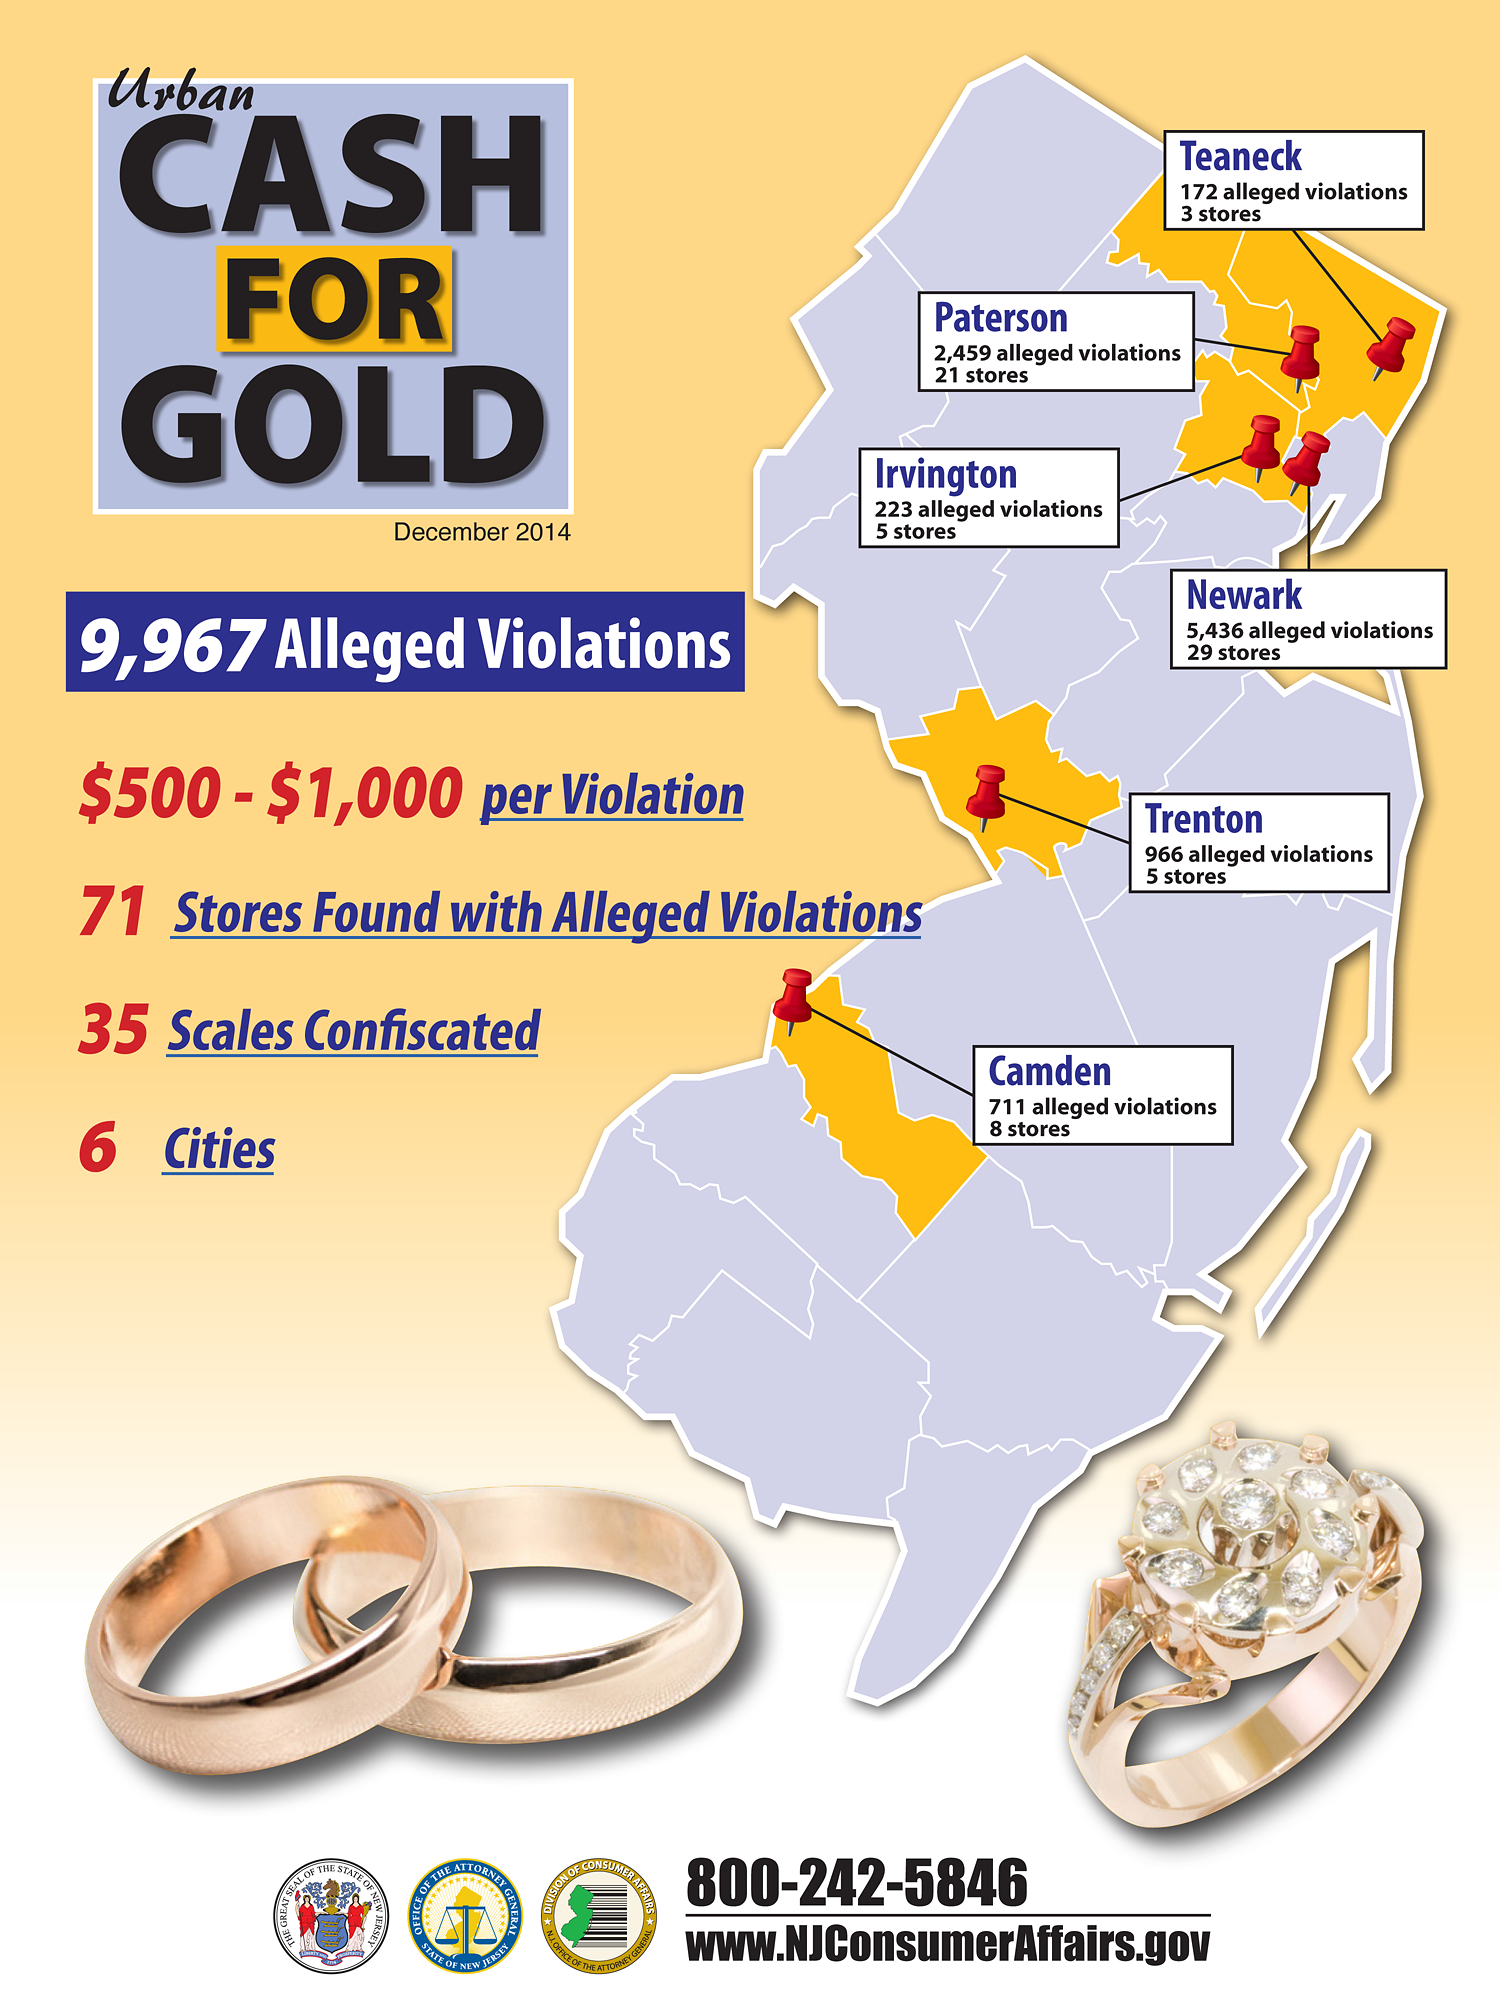 cash-for-gold-crackdown-paterson